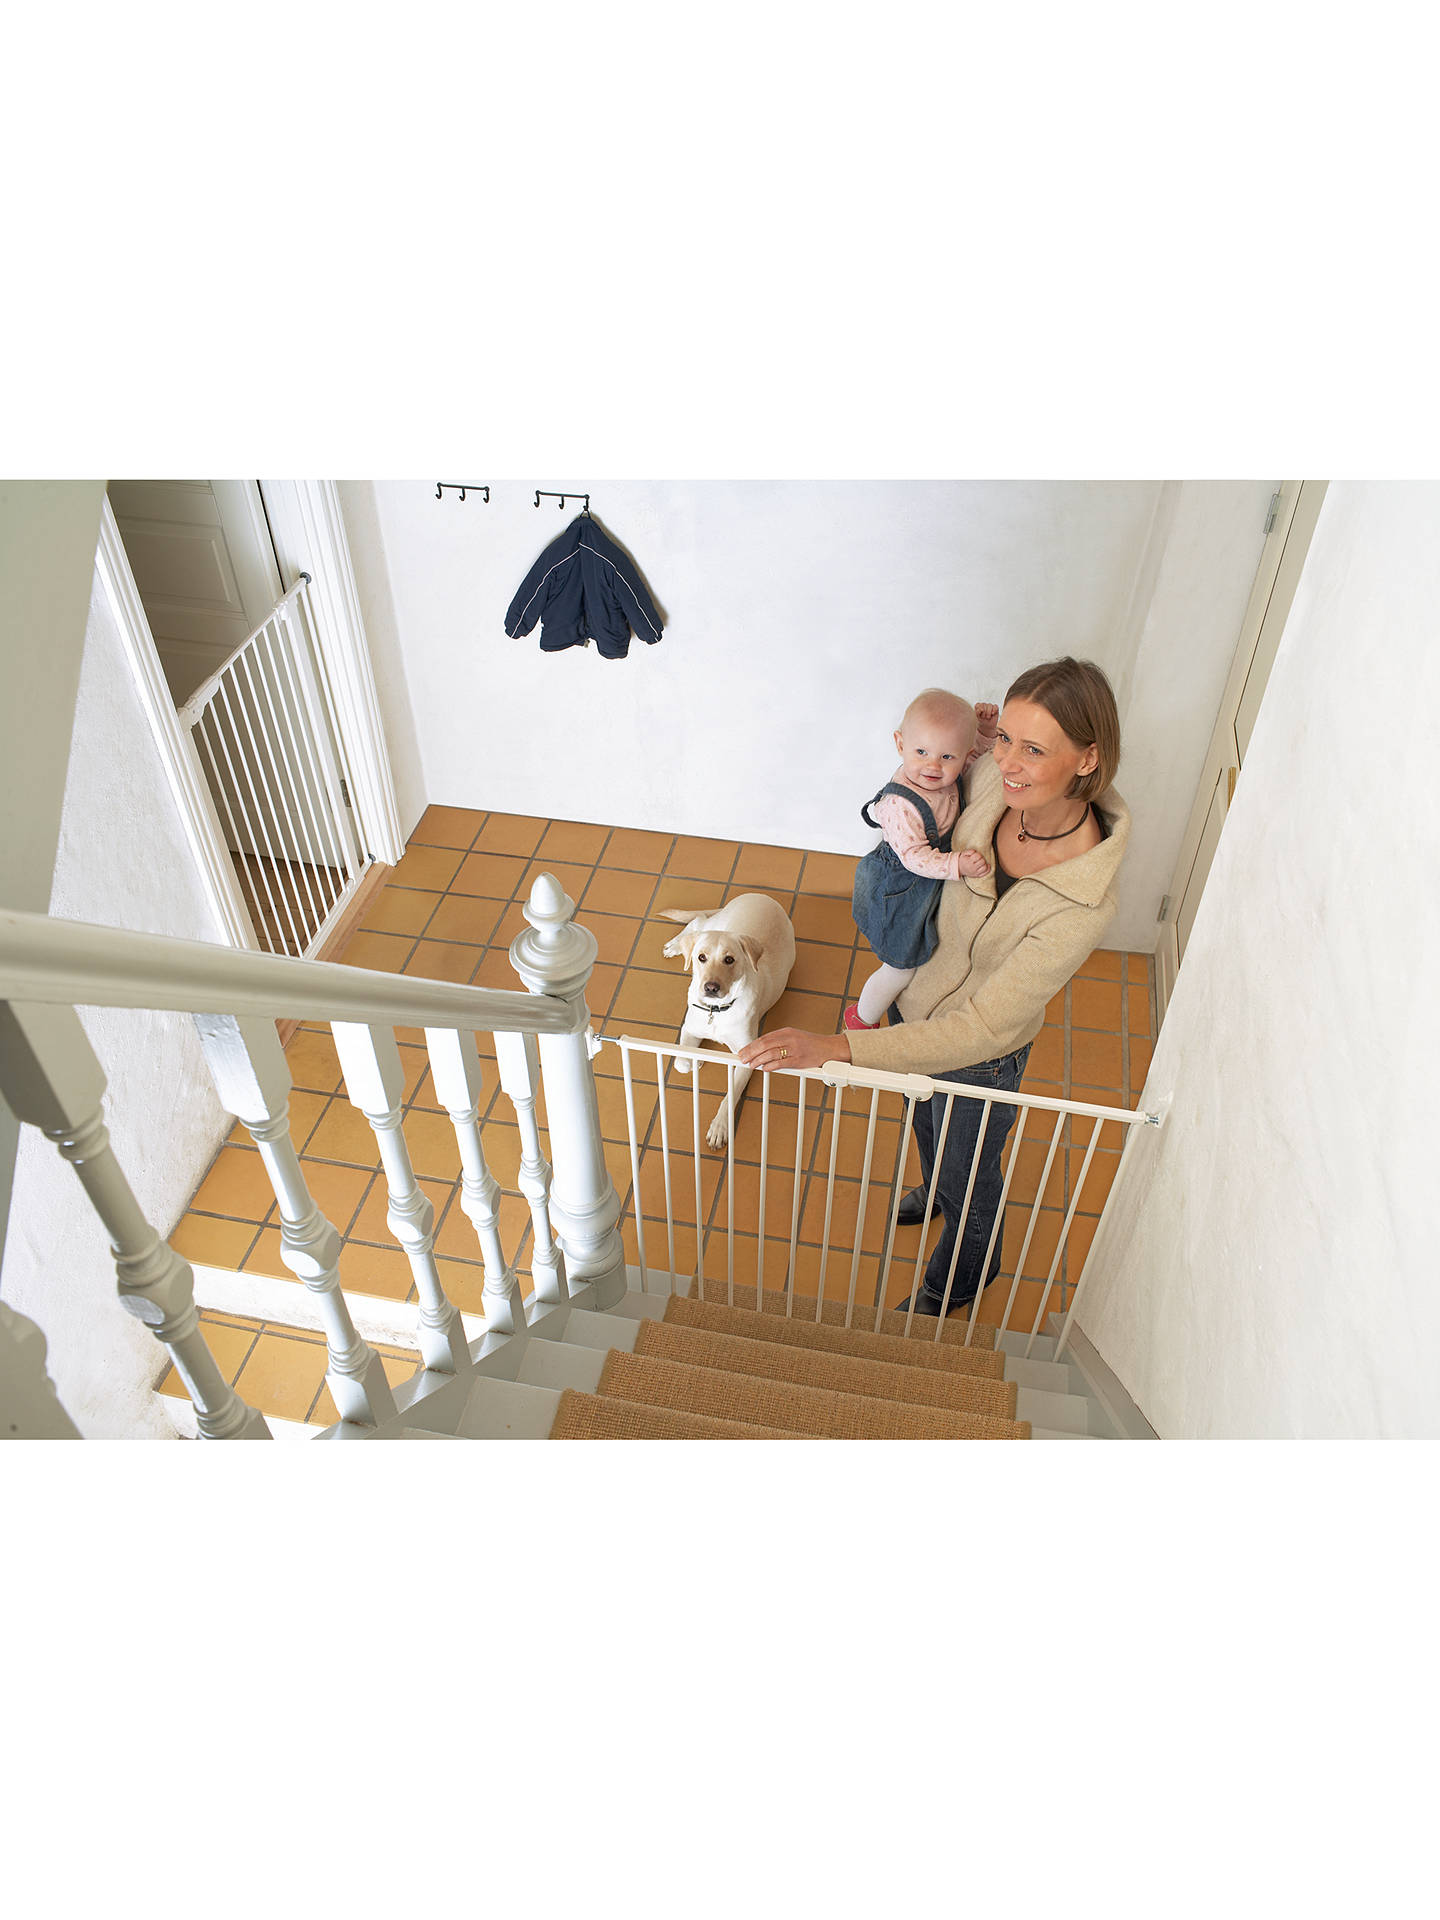 Babydan Extra Tall Extending Baby Gate White At John Lewis Partners